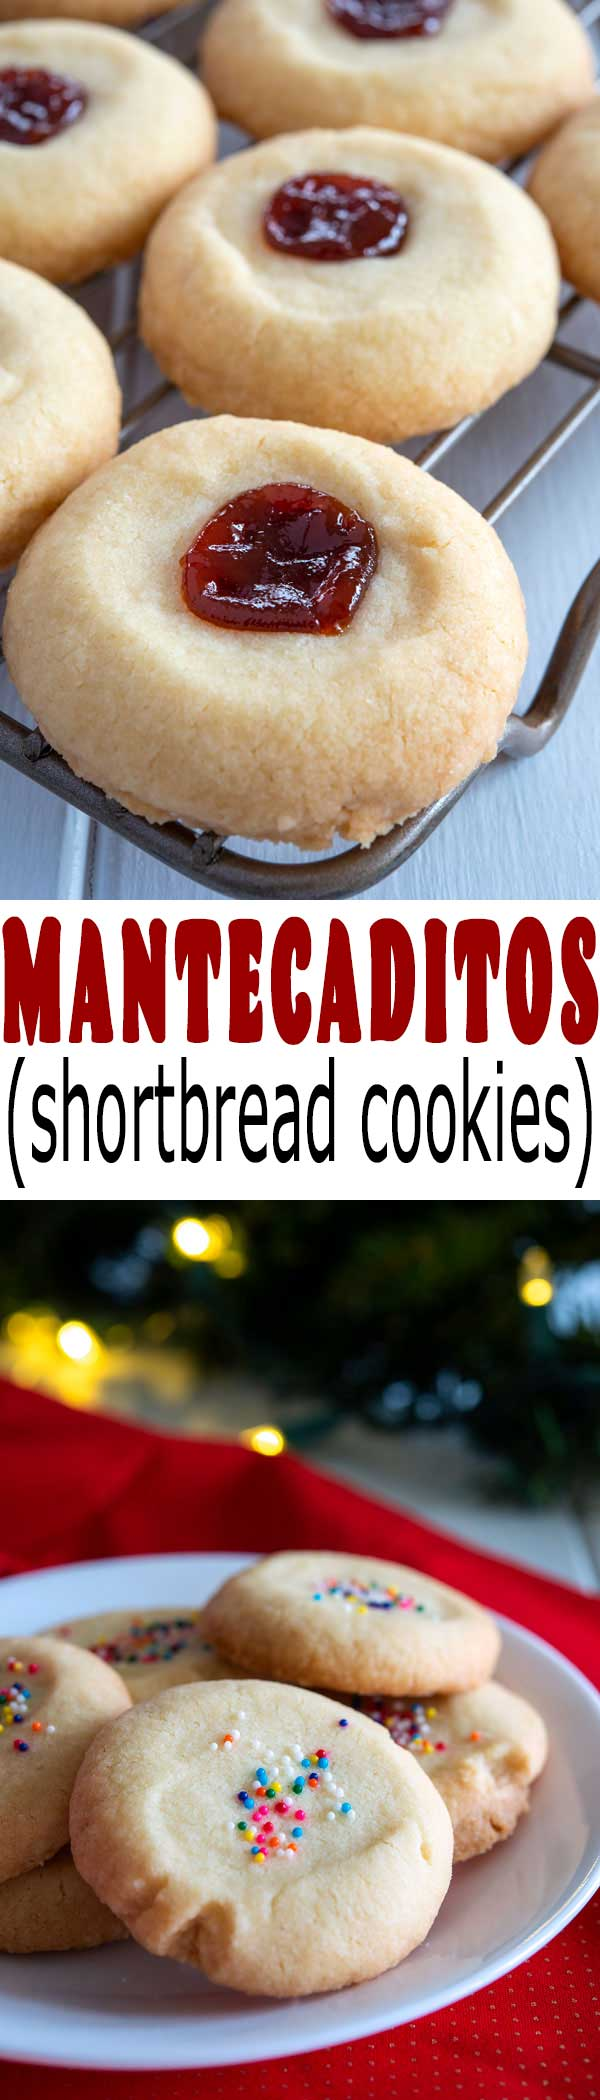 Tender, crisp, buttery Mantecaditos - an easy dessert recipe from Puerto Rico! | sugar cookies | almonds | #christmascookies